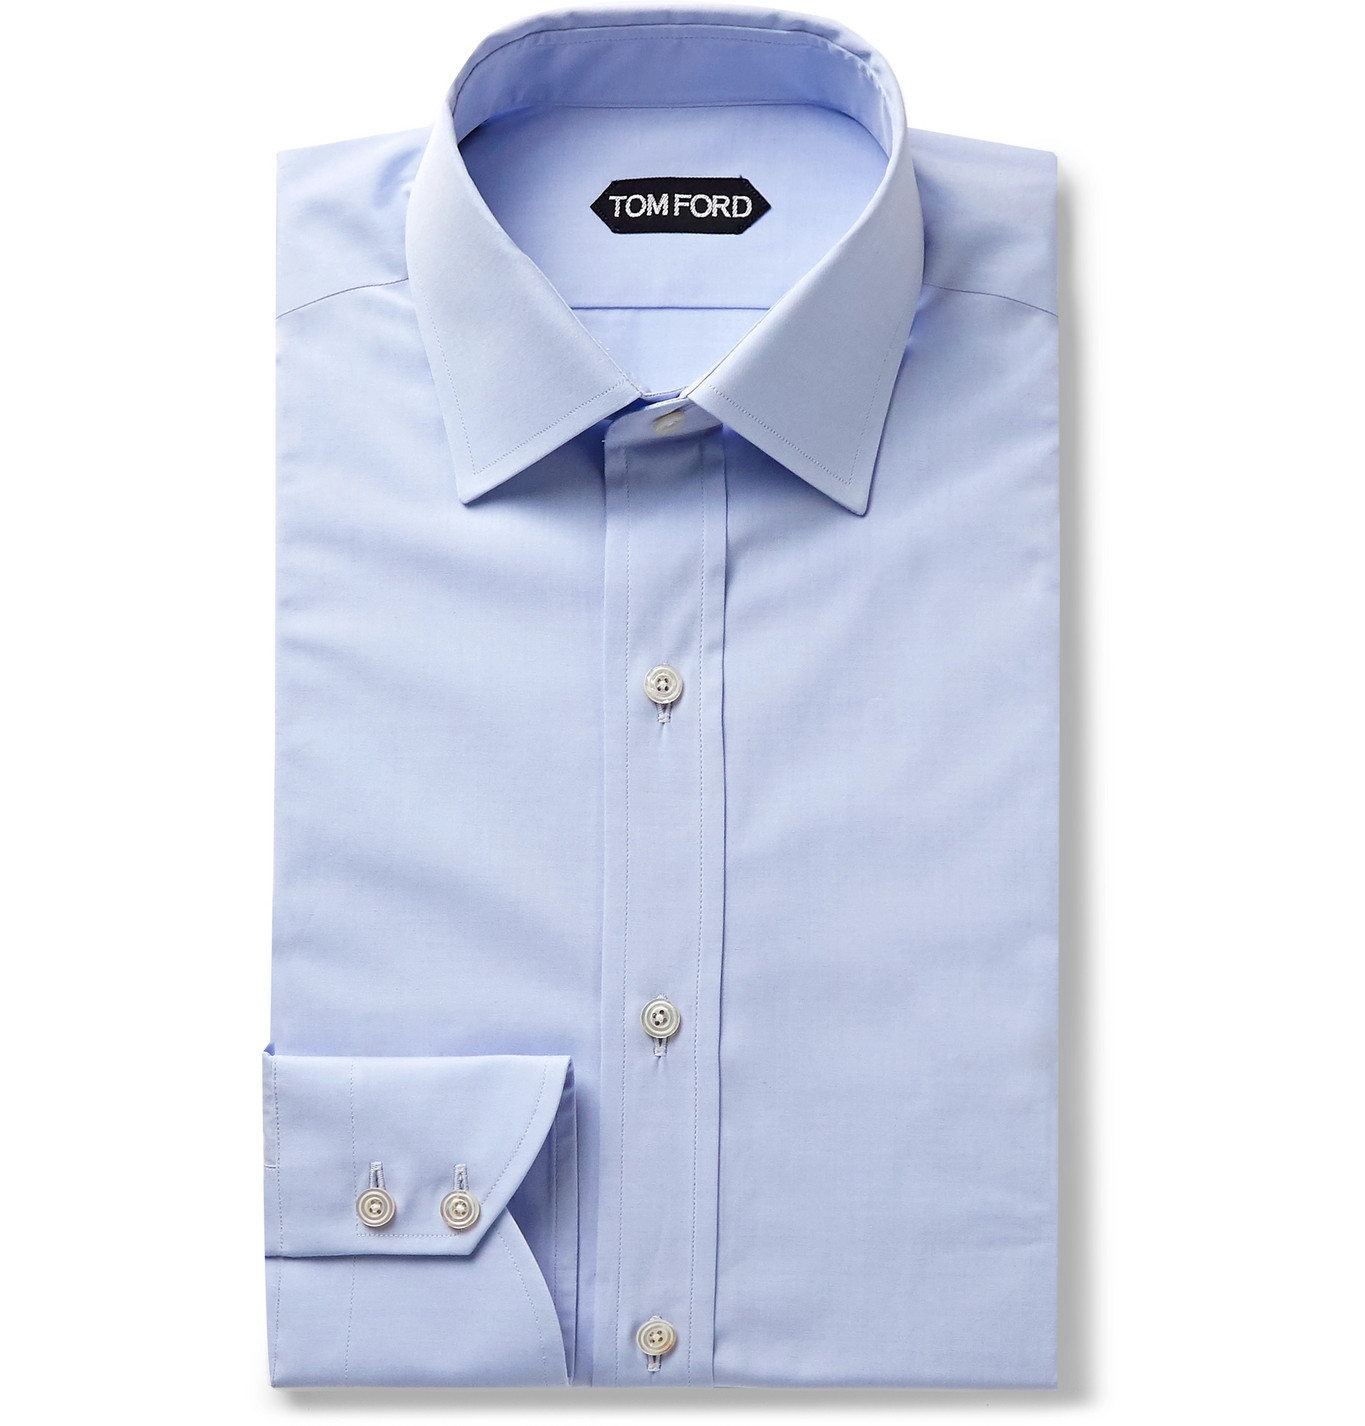 TOM FORD - Light-Blue Slim-Fit Cotton-Poplin Shirt - Men - Blue